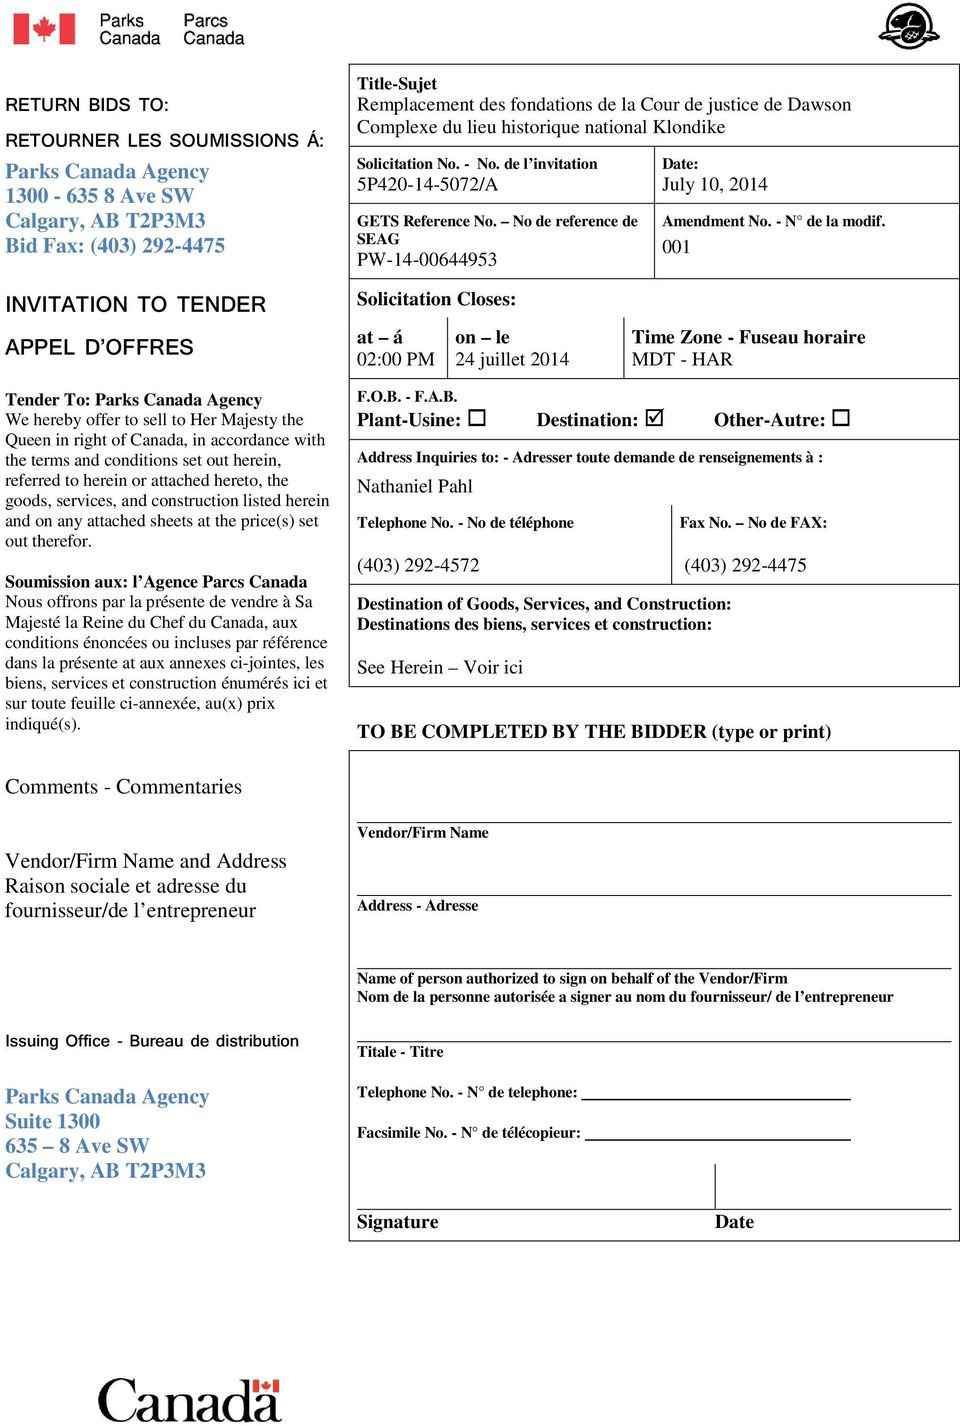 001 INVITATION TO TENDER APPEL D OFFRES Solicitation Closes: at á 02:00 PM on le 24 juillet 2014 Time Zone - Fuseau horaire MDT - HAR Tender To: Parks Canada Agency We hereby offer to sell to Her